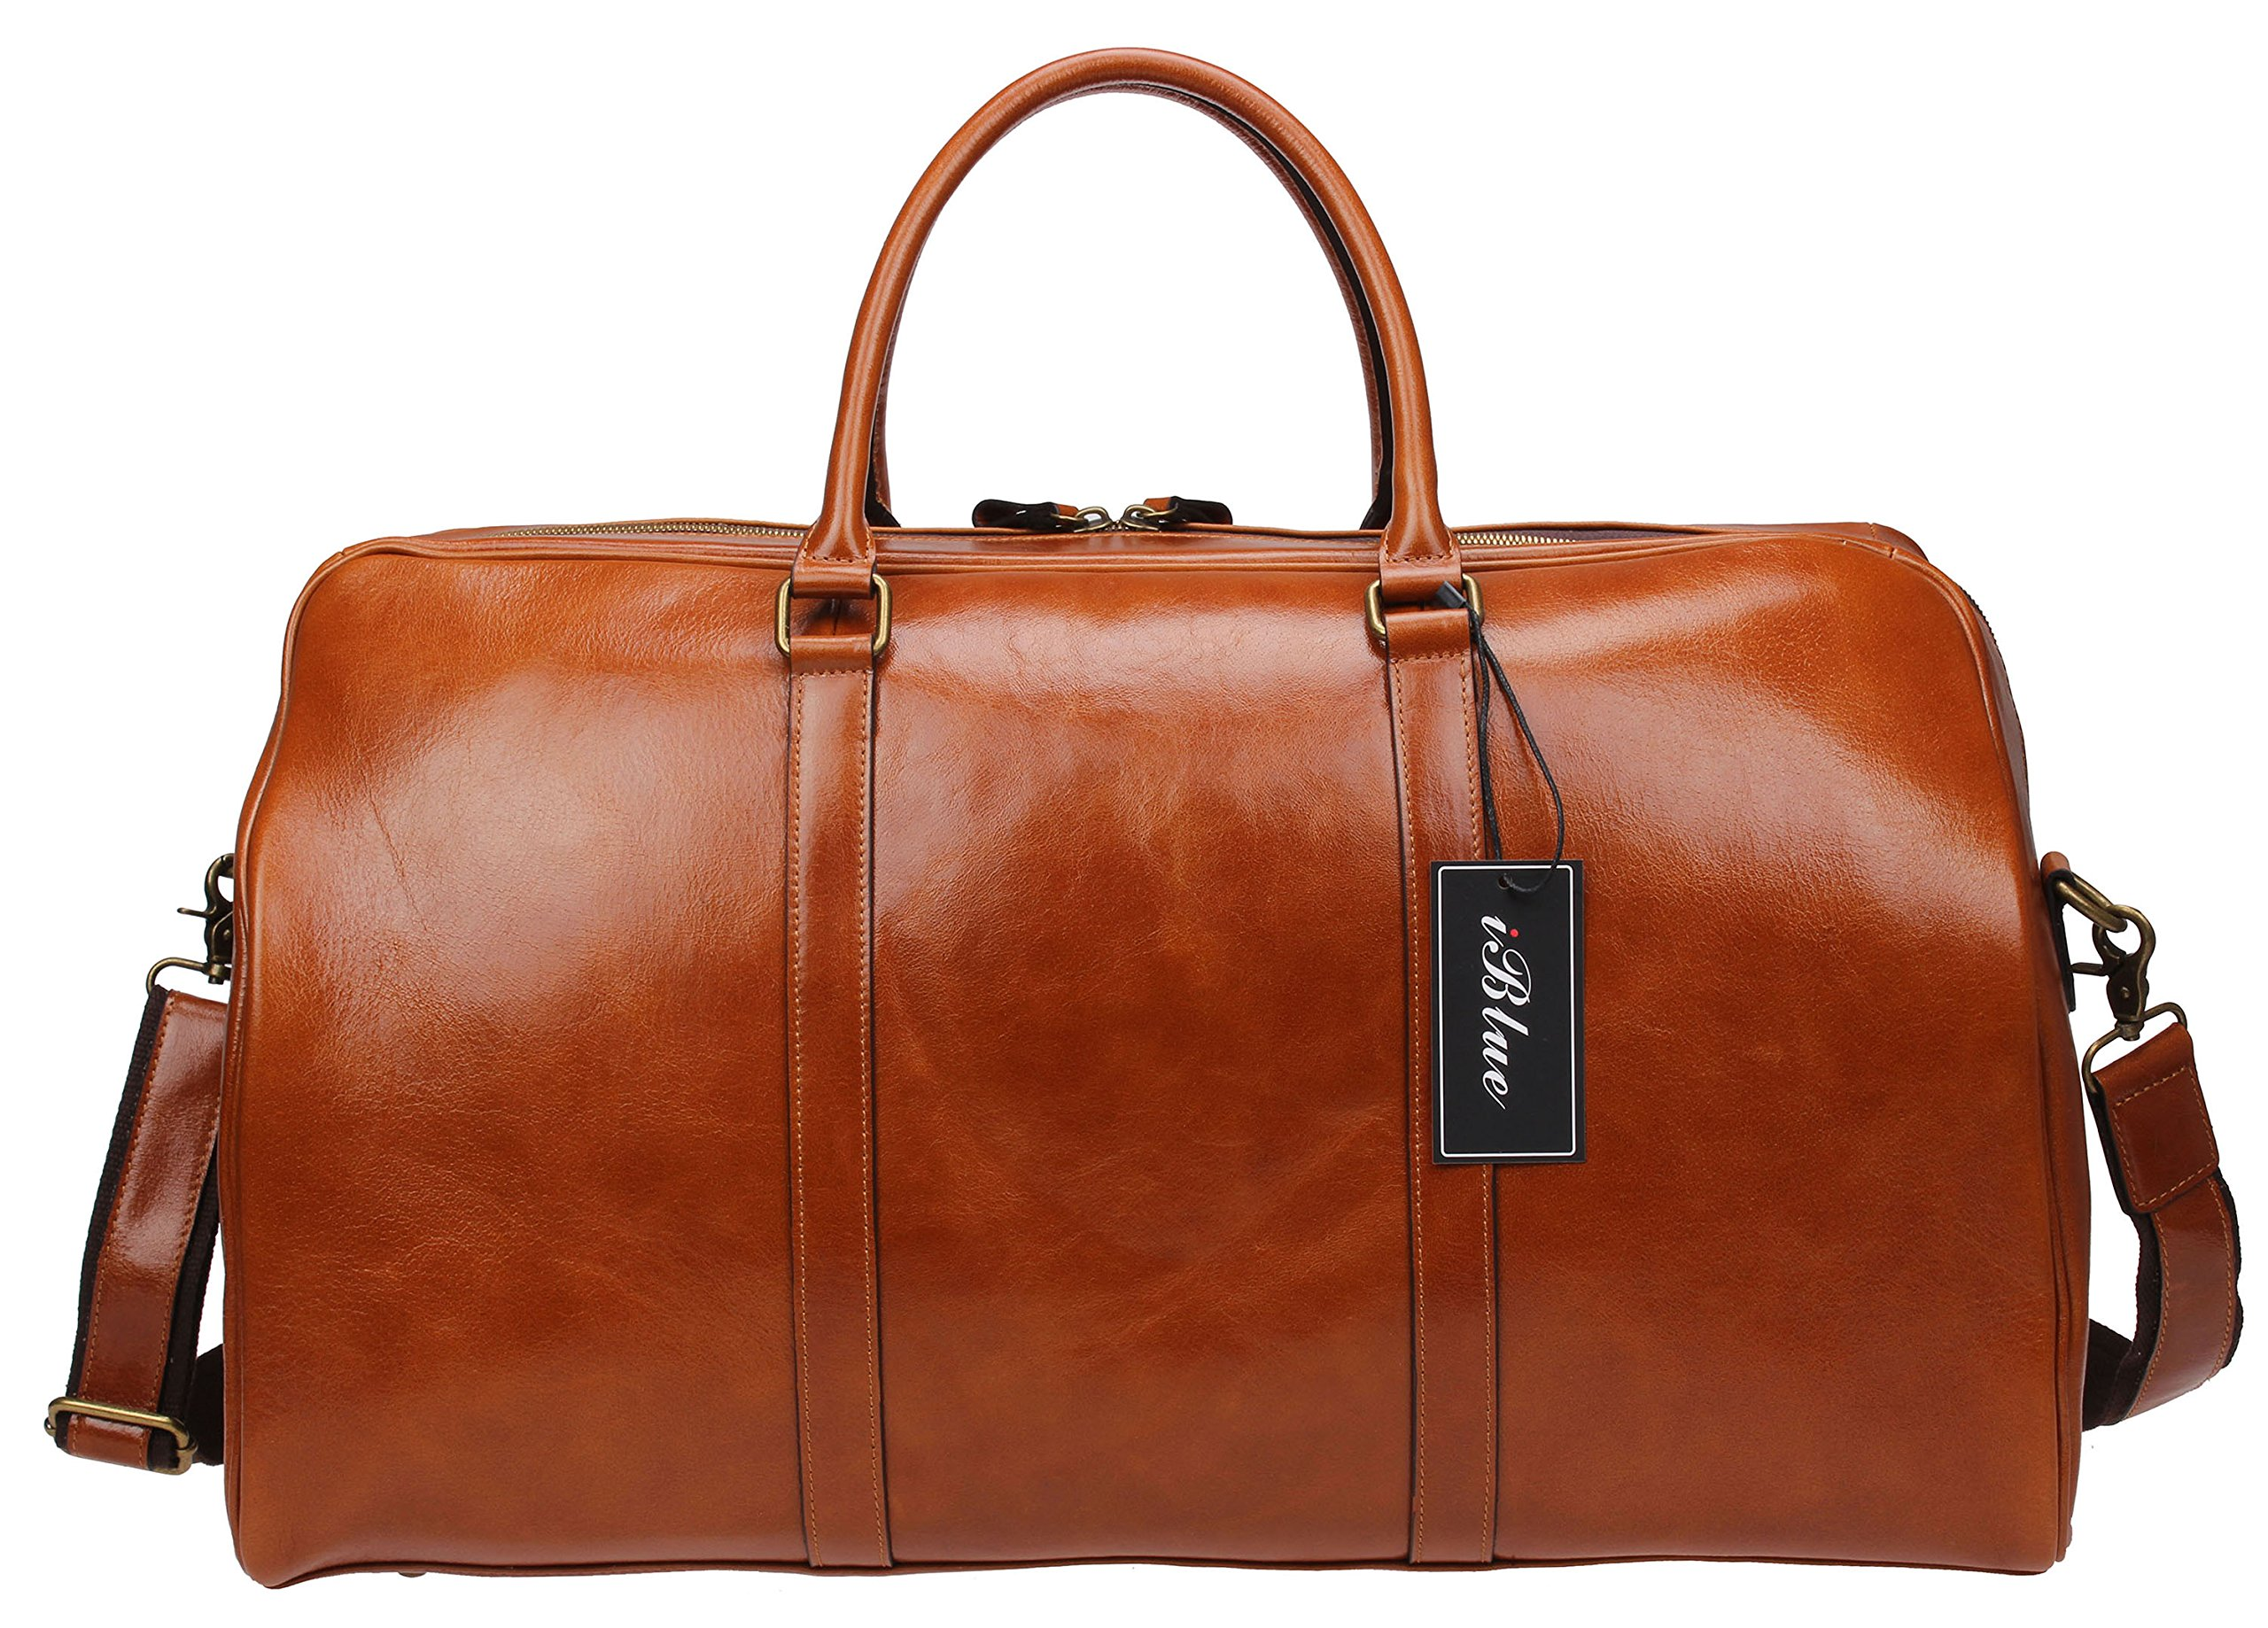 Iblue Mens Genuine Leather Crafted Overnight Travel Duffel Roomy Weekend Carry On Tote Airplane 22in #B002(XL 22'', brown)